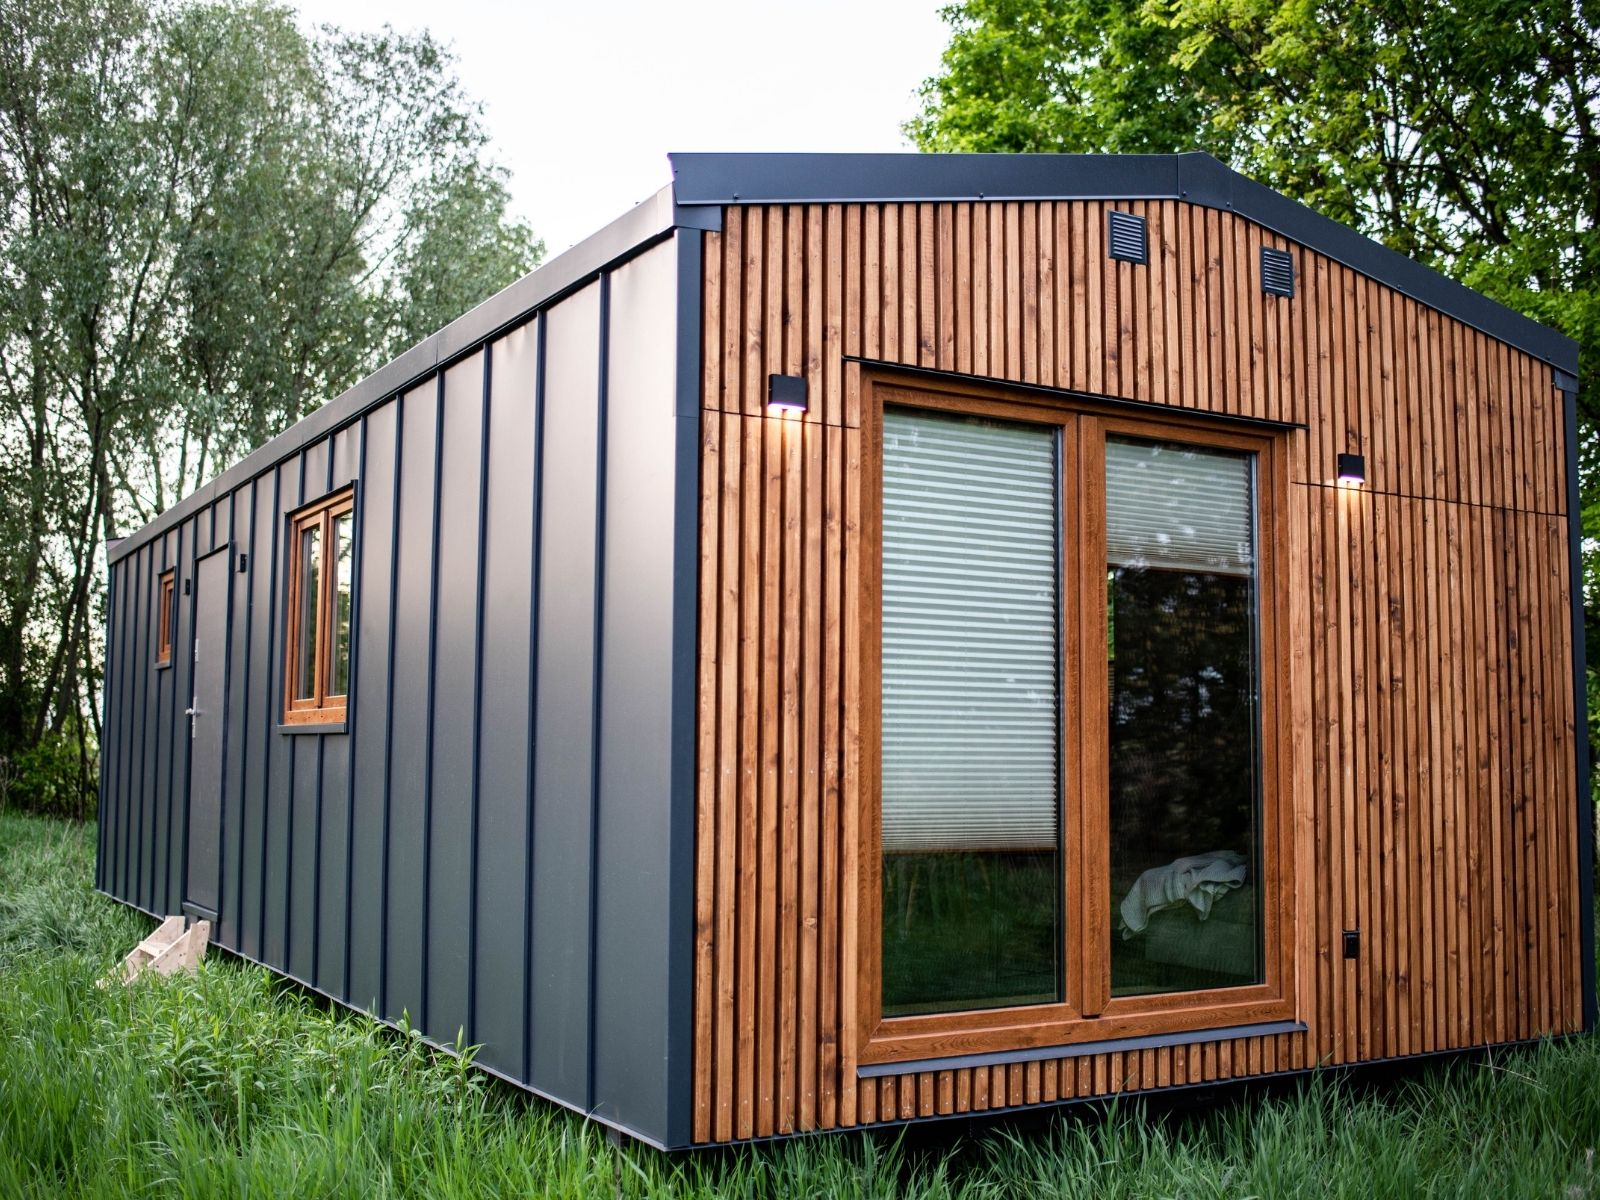 JPJ Mobile House - Producent domów mobilnych (31)